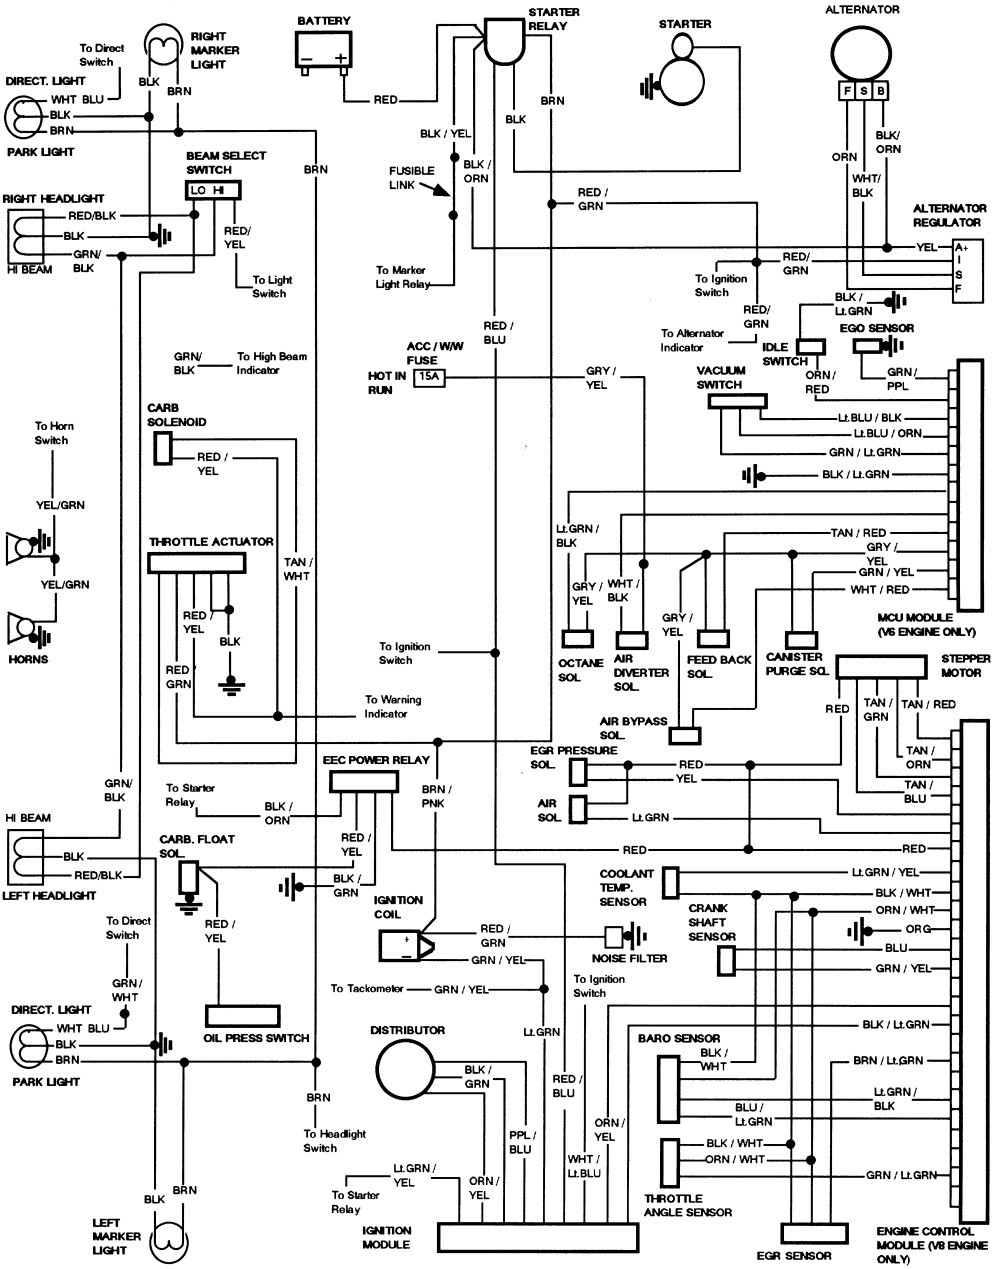 1990 F 150 Engine Wiring 1990 ford F150 Ignition Switch Wiring Diagram Of 1990 F 150 Engine Wiring